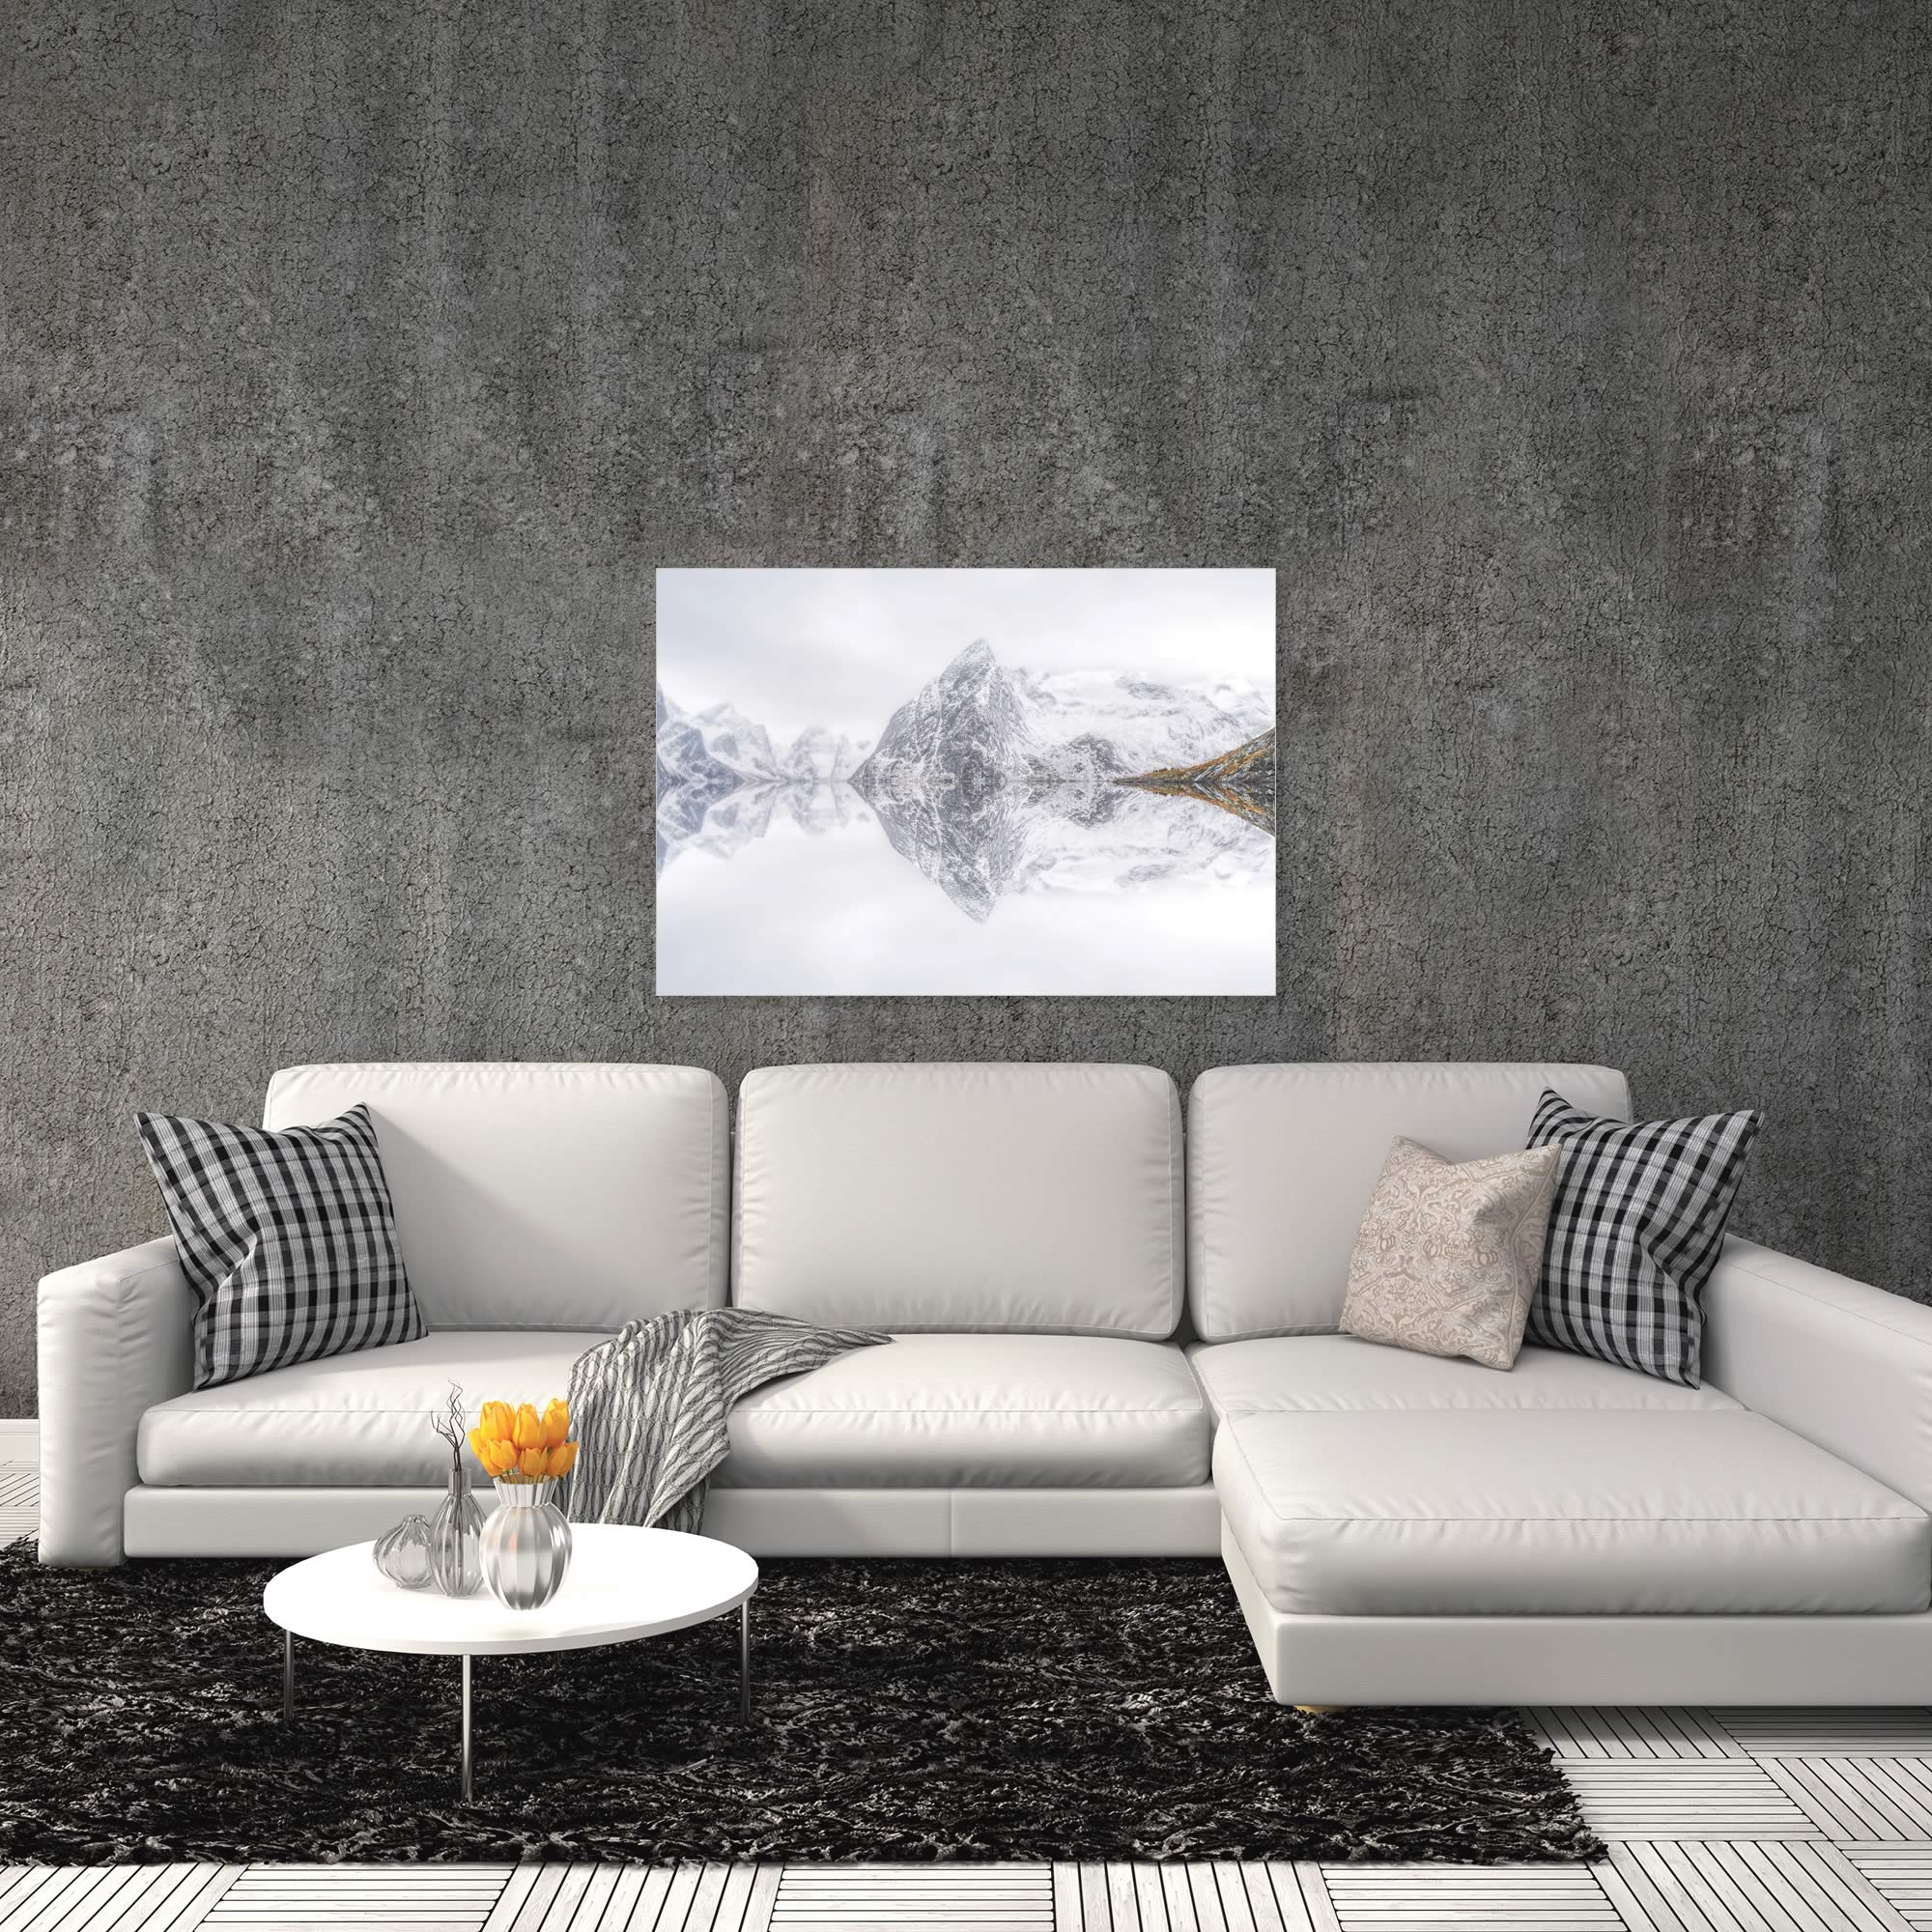 Lofoten Reflection by Ignacio Palacios - Winter Art on Metal or Acrylic - Alternate View 1